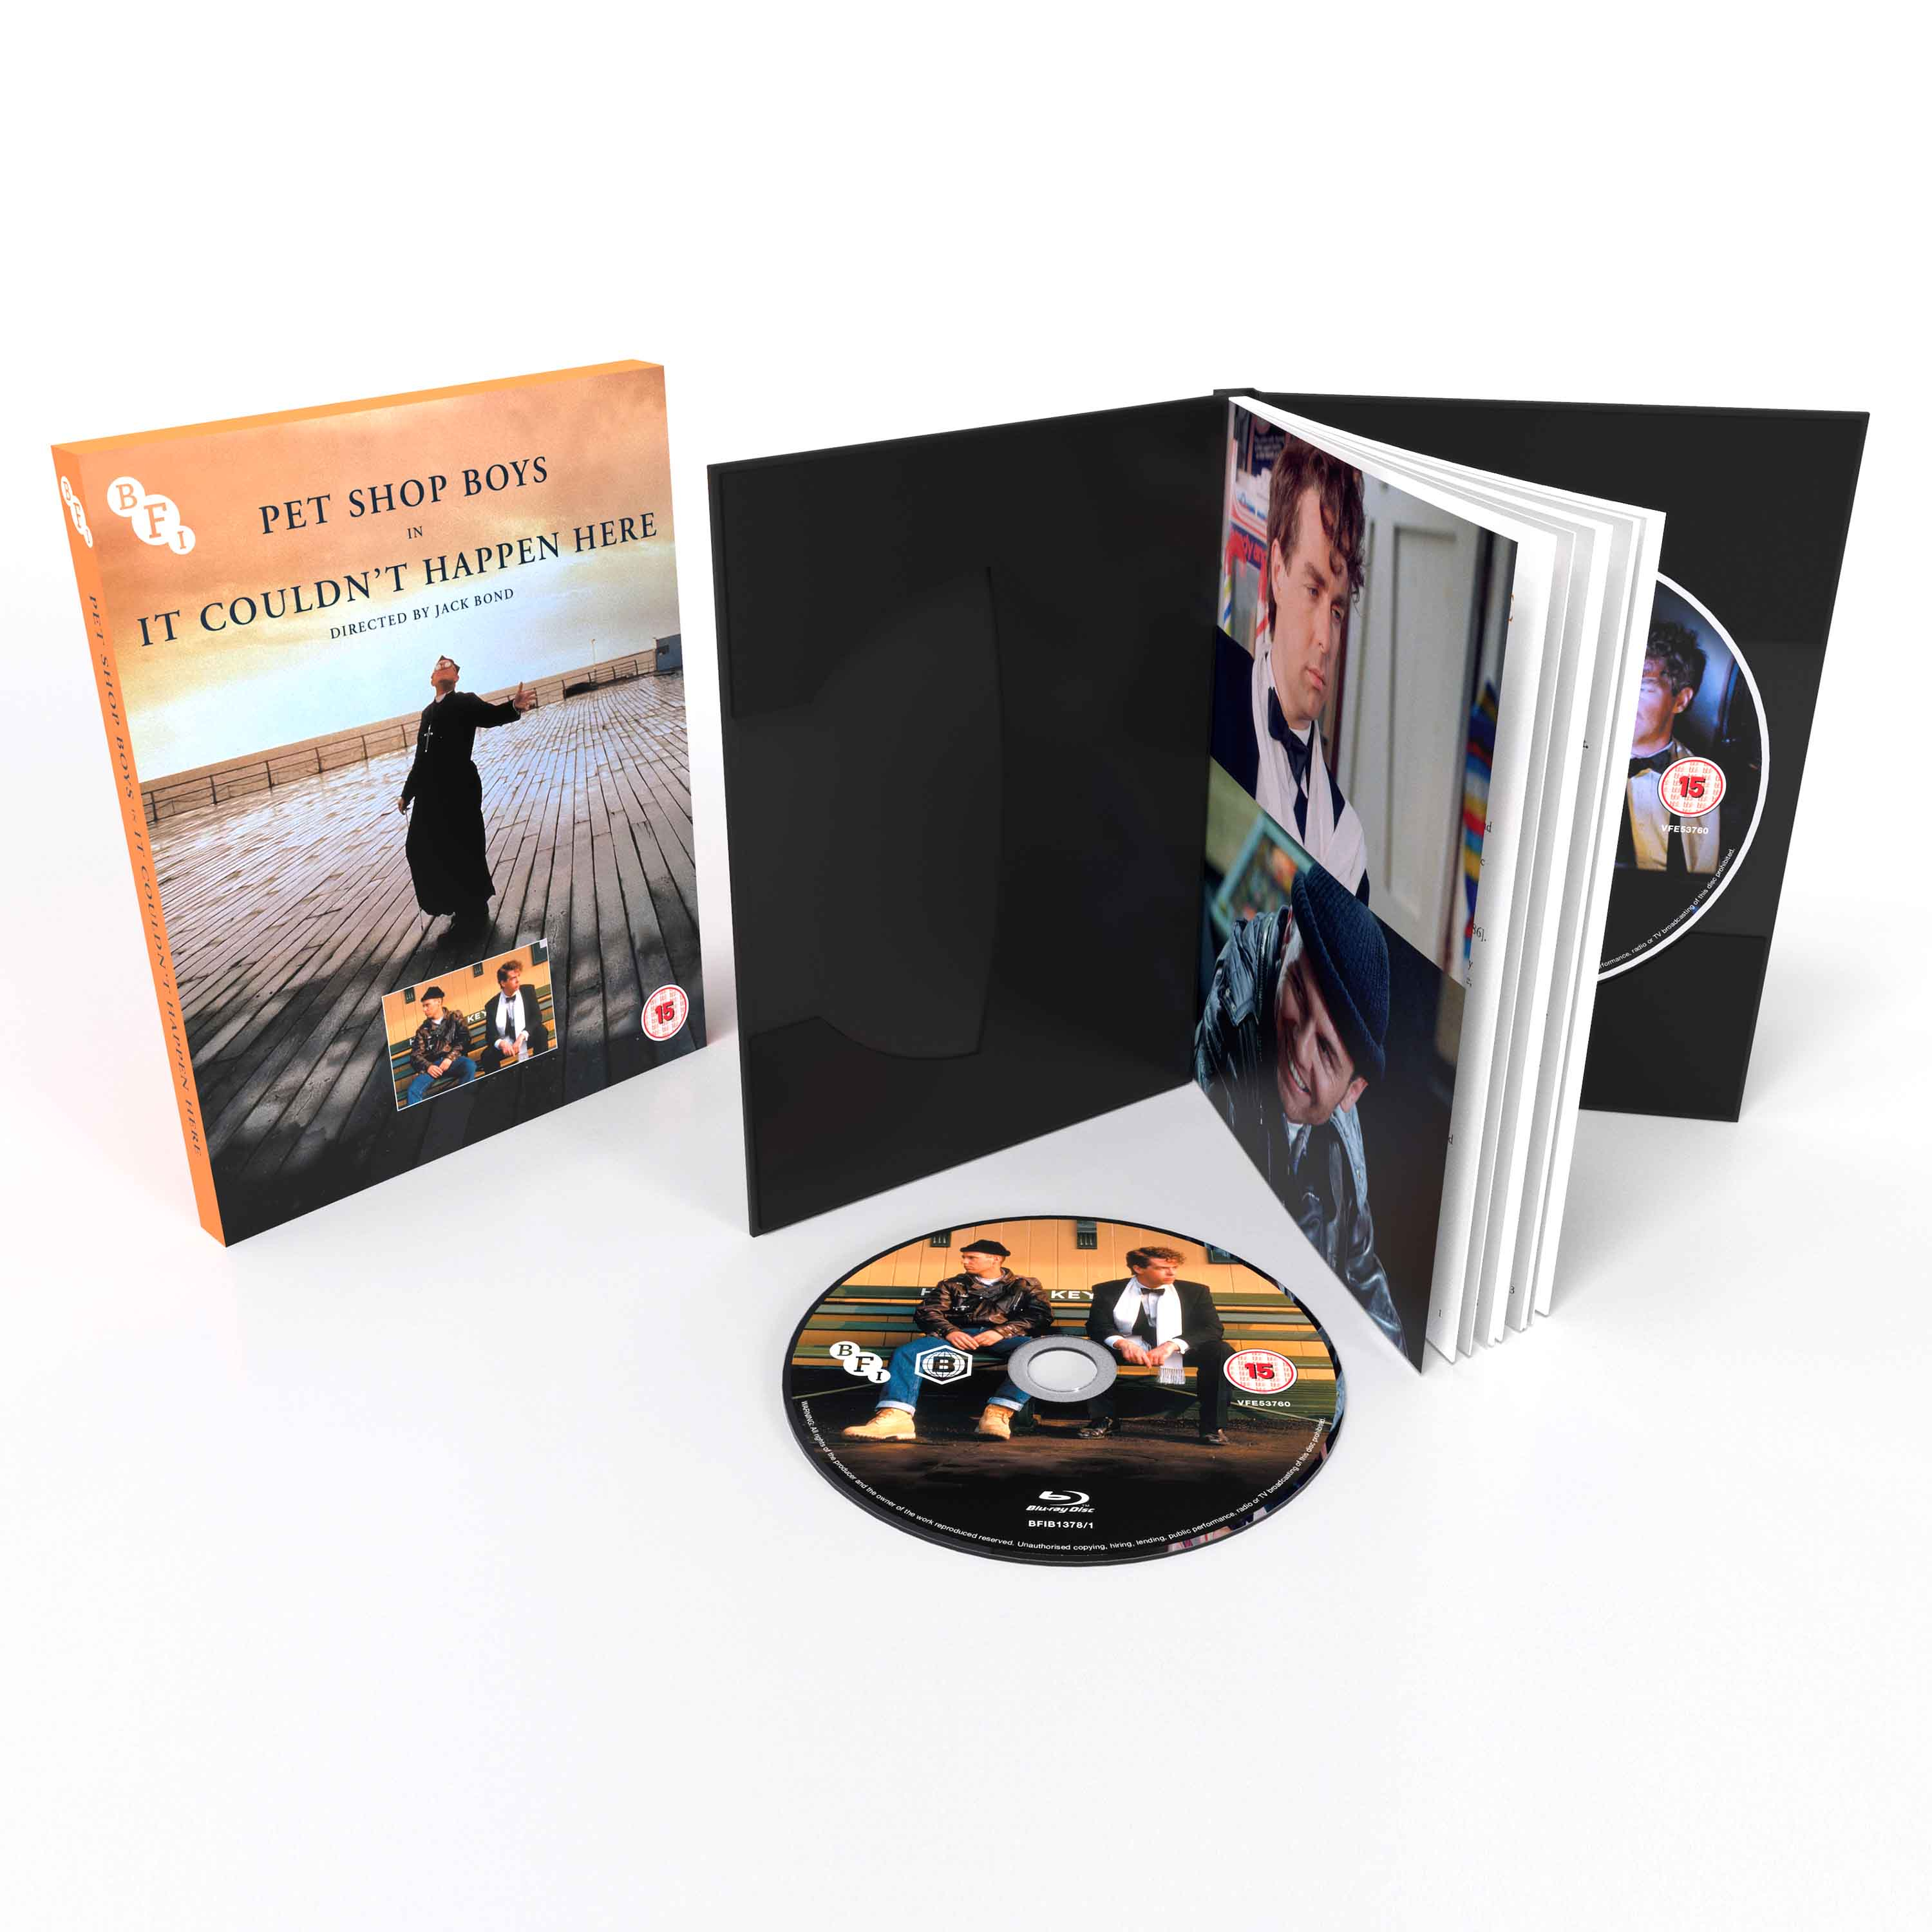 Buy PRE-ORDER It Couldn't Happen Here (Limited Dual Format Edition)